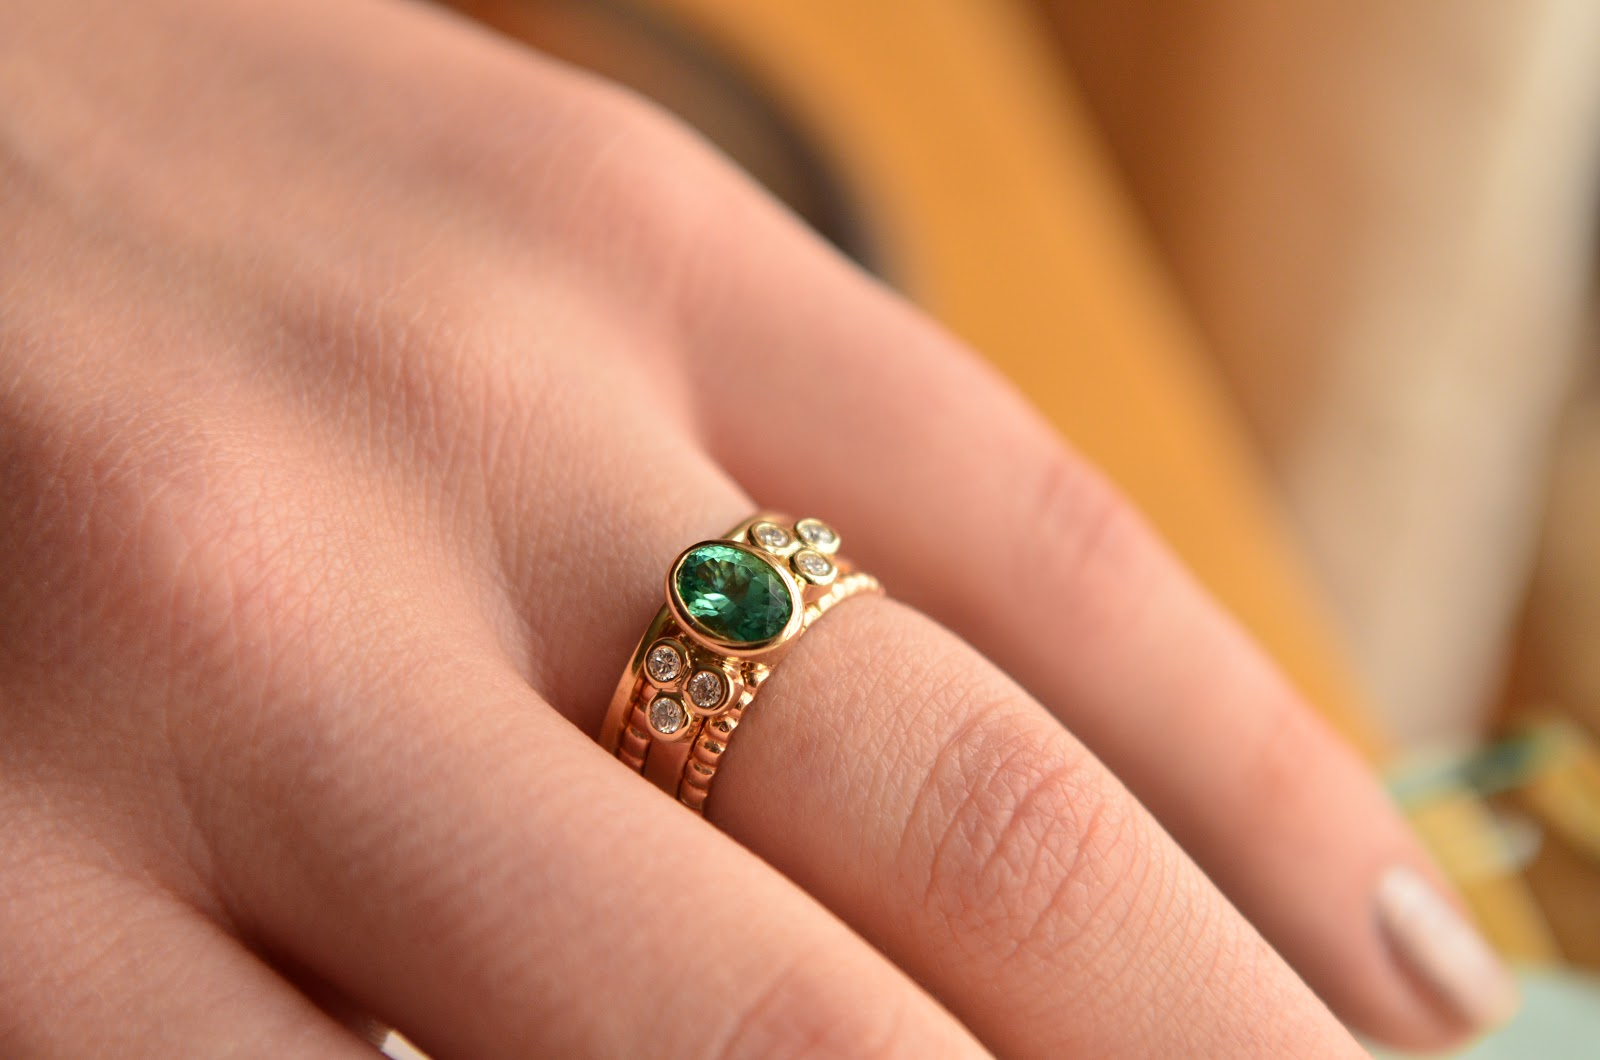 Jewellery everstylish rings recommendations to wear in summer in 2019